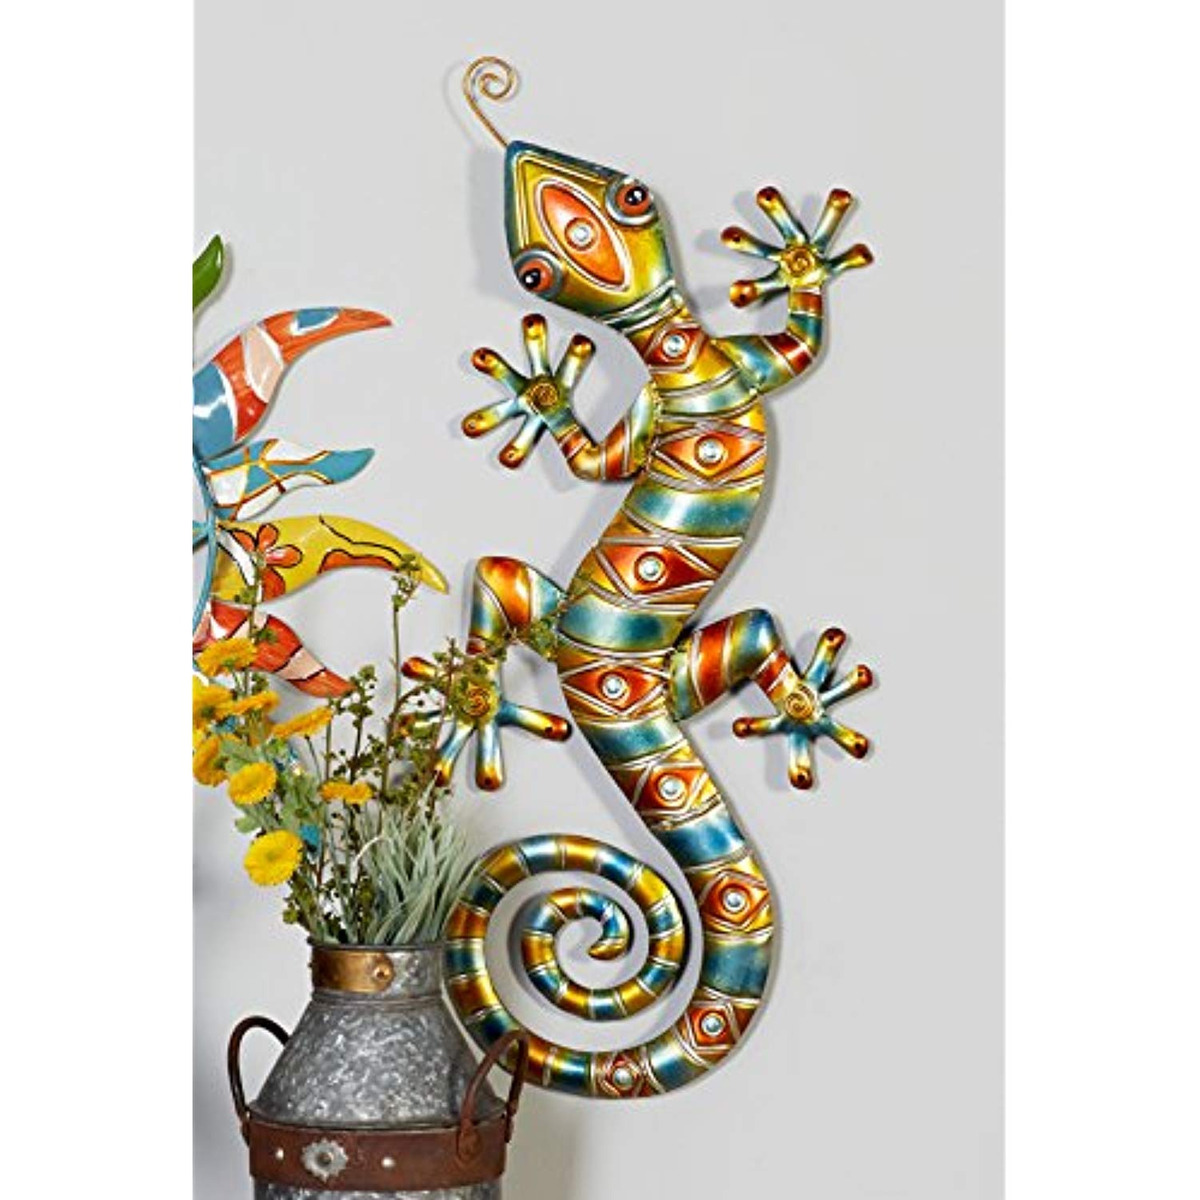 Deco 79 Metal Lizard Home Decor Wall Sculptures 30 By 14